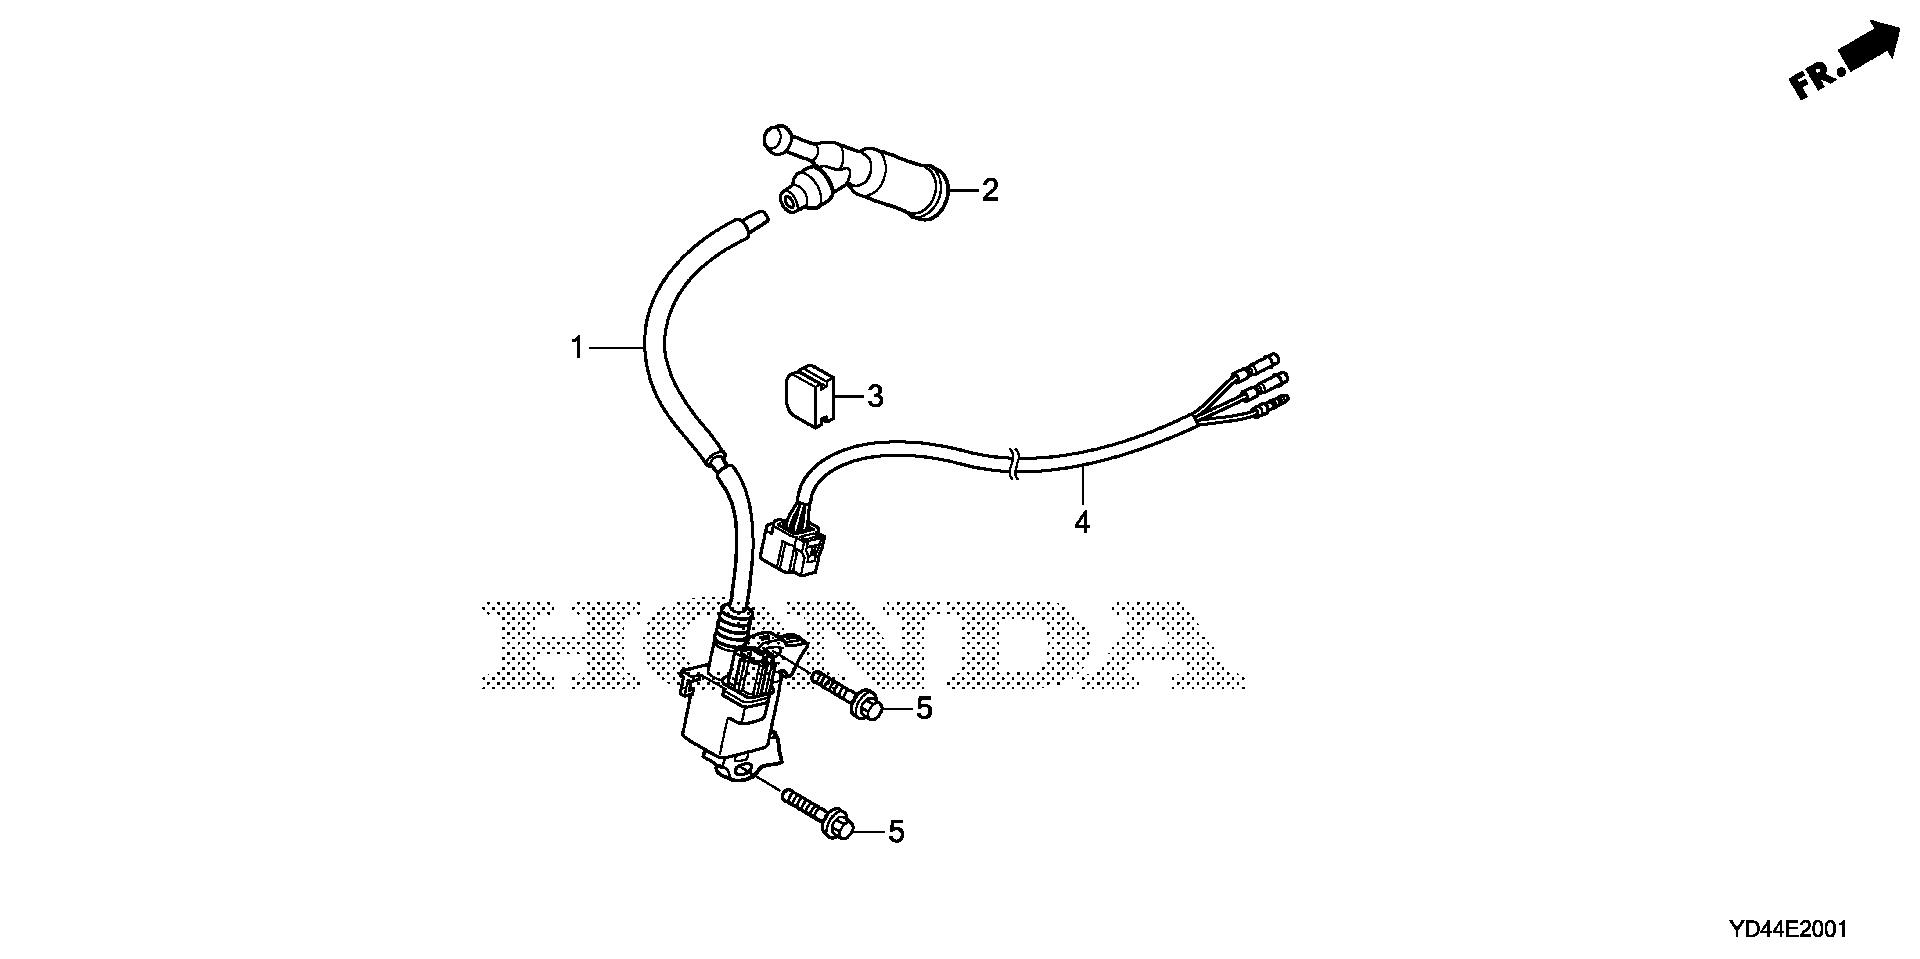 IGNITION COIL (2)